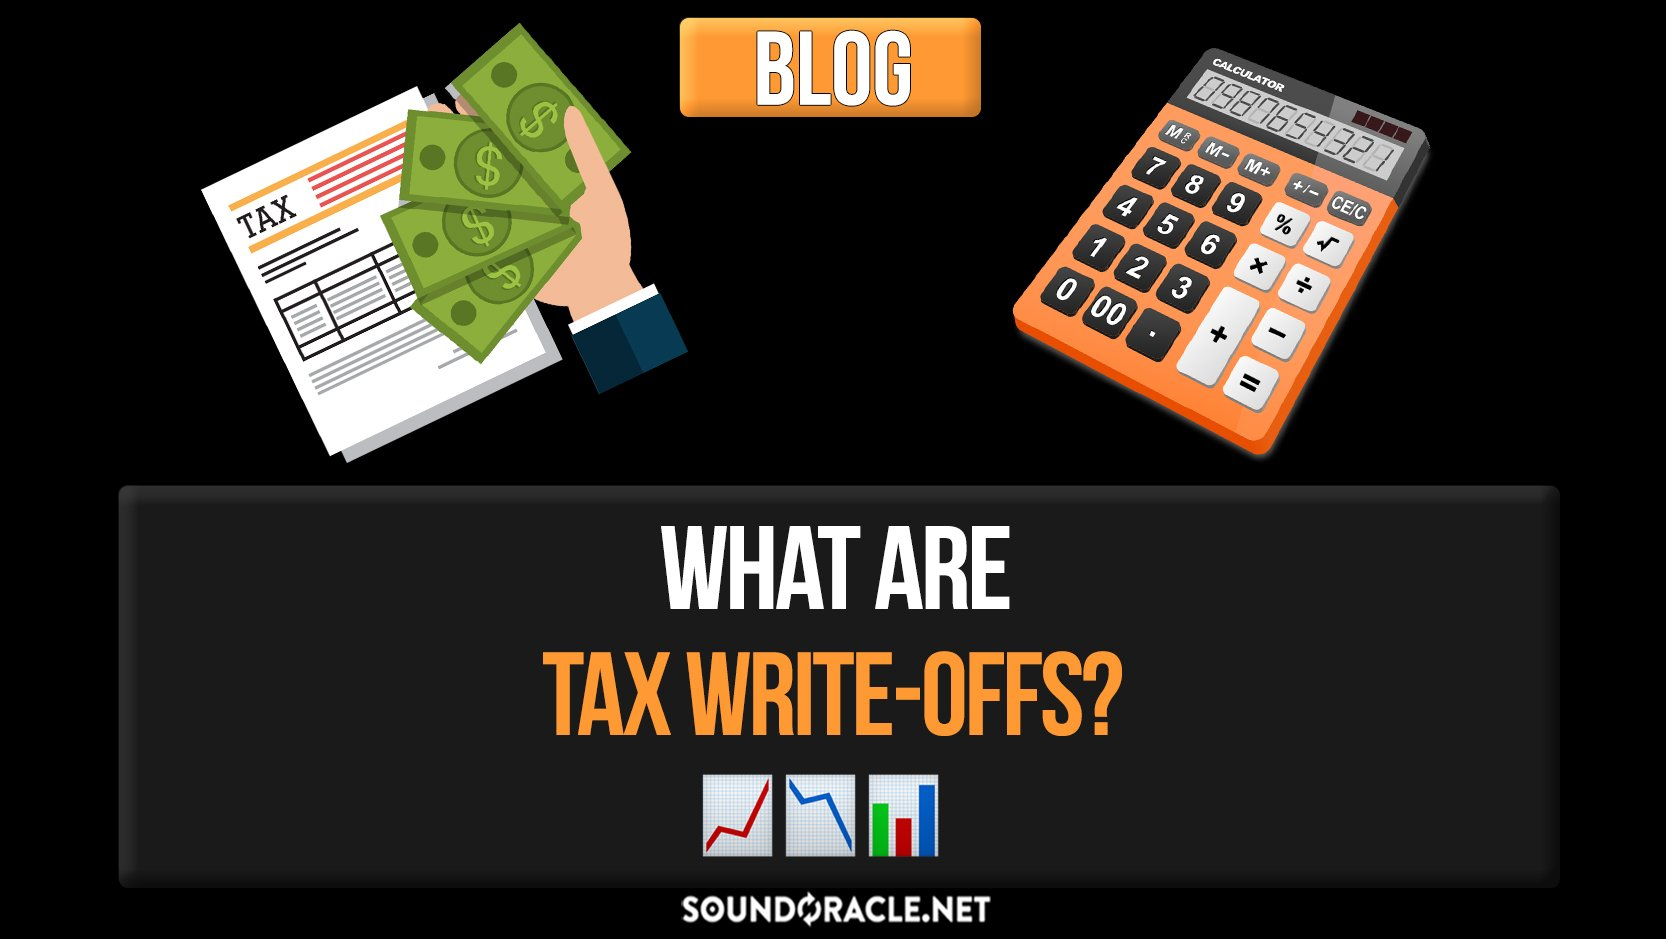 What Are Tax Write-Offs? ׀ SoundOracle.net